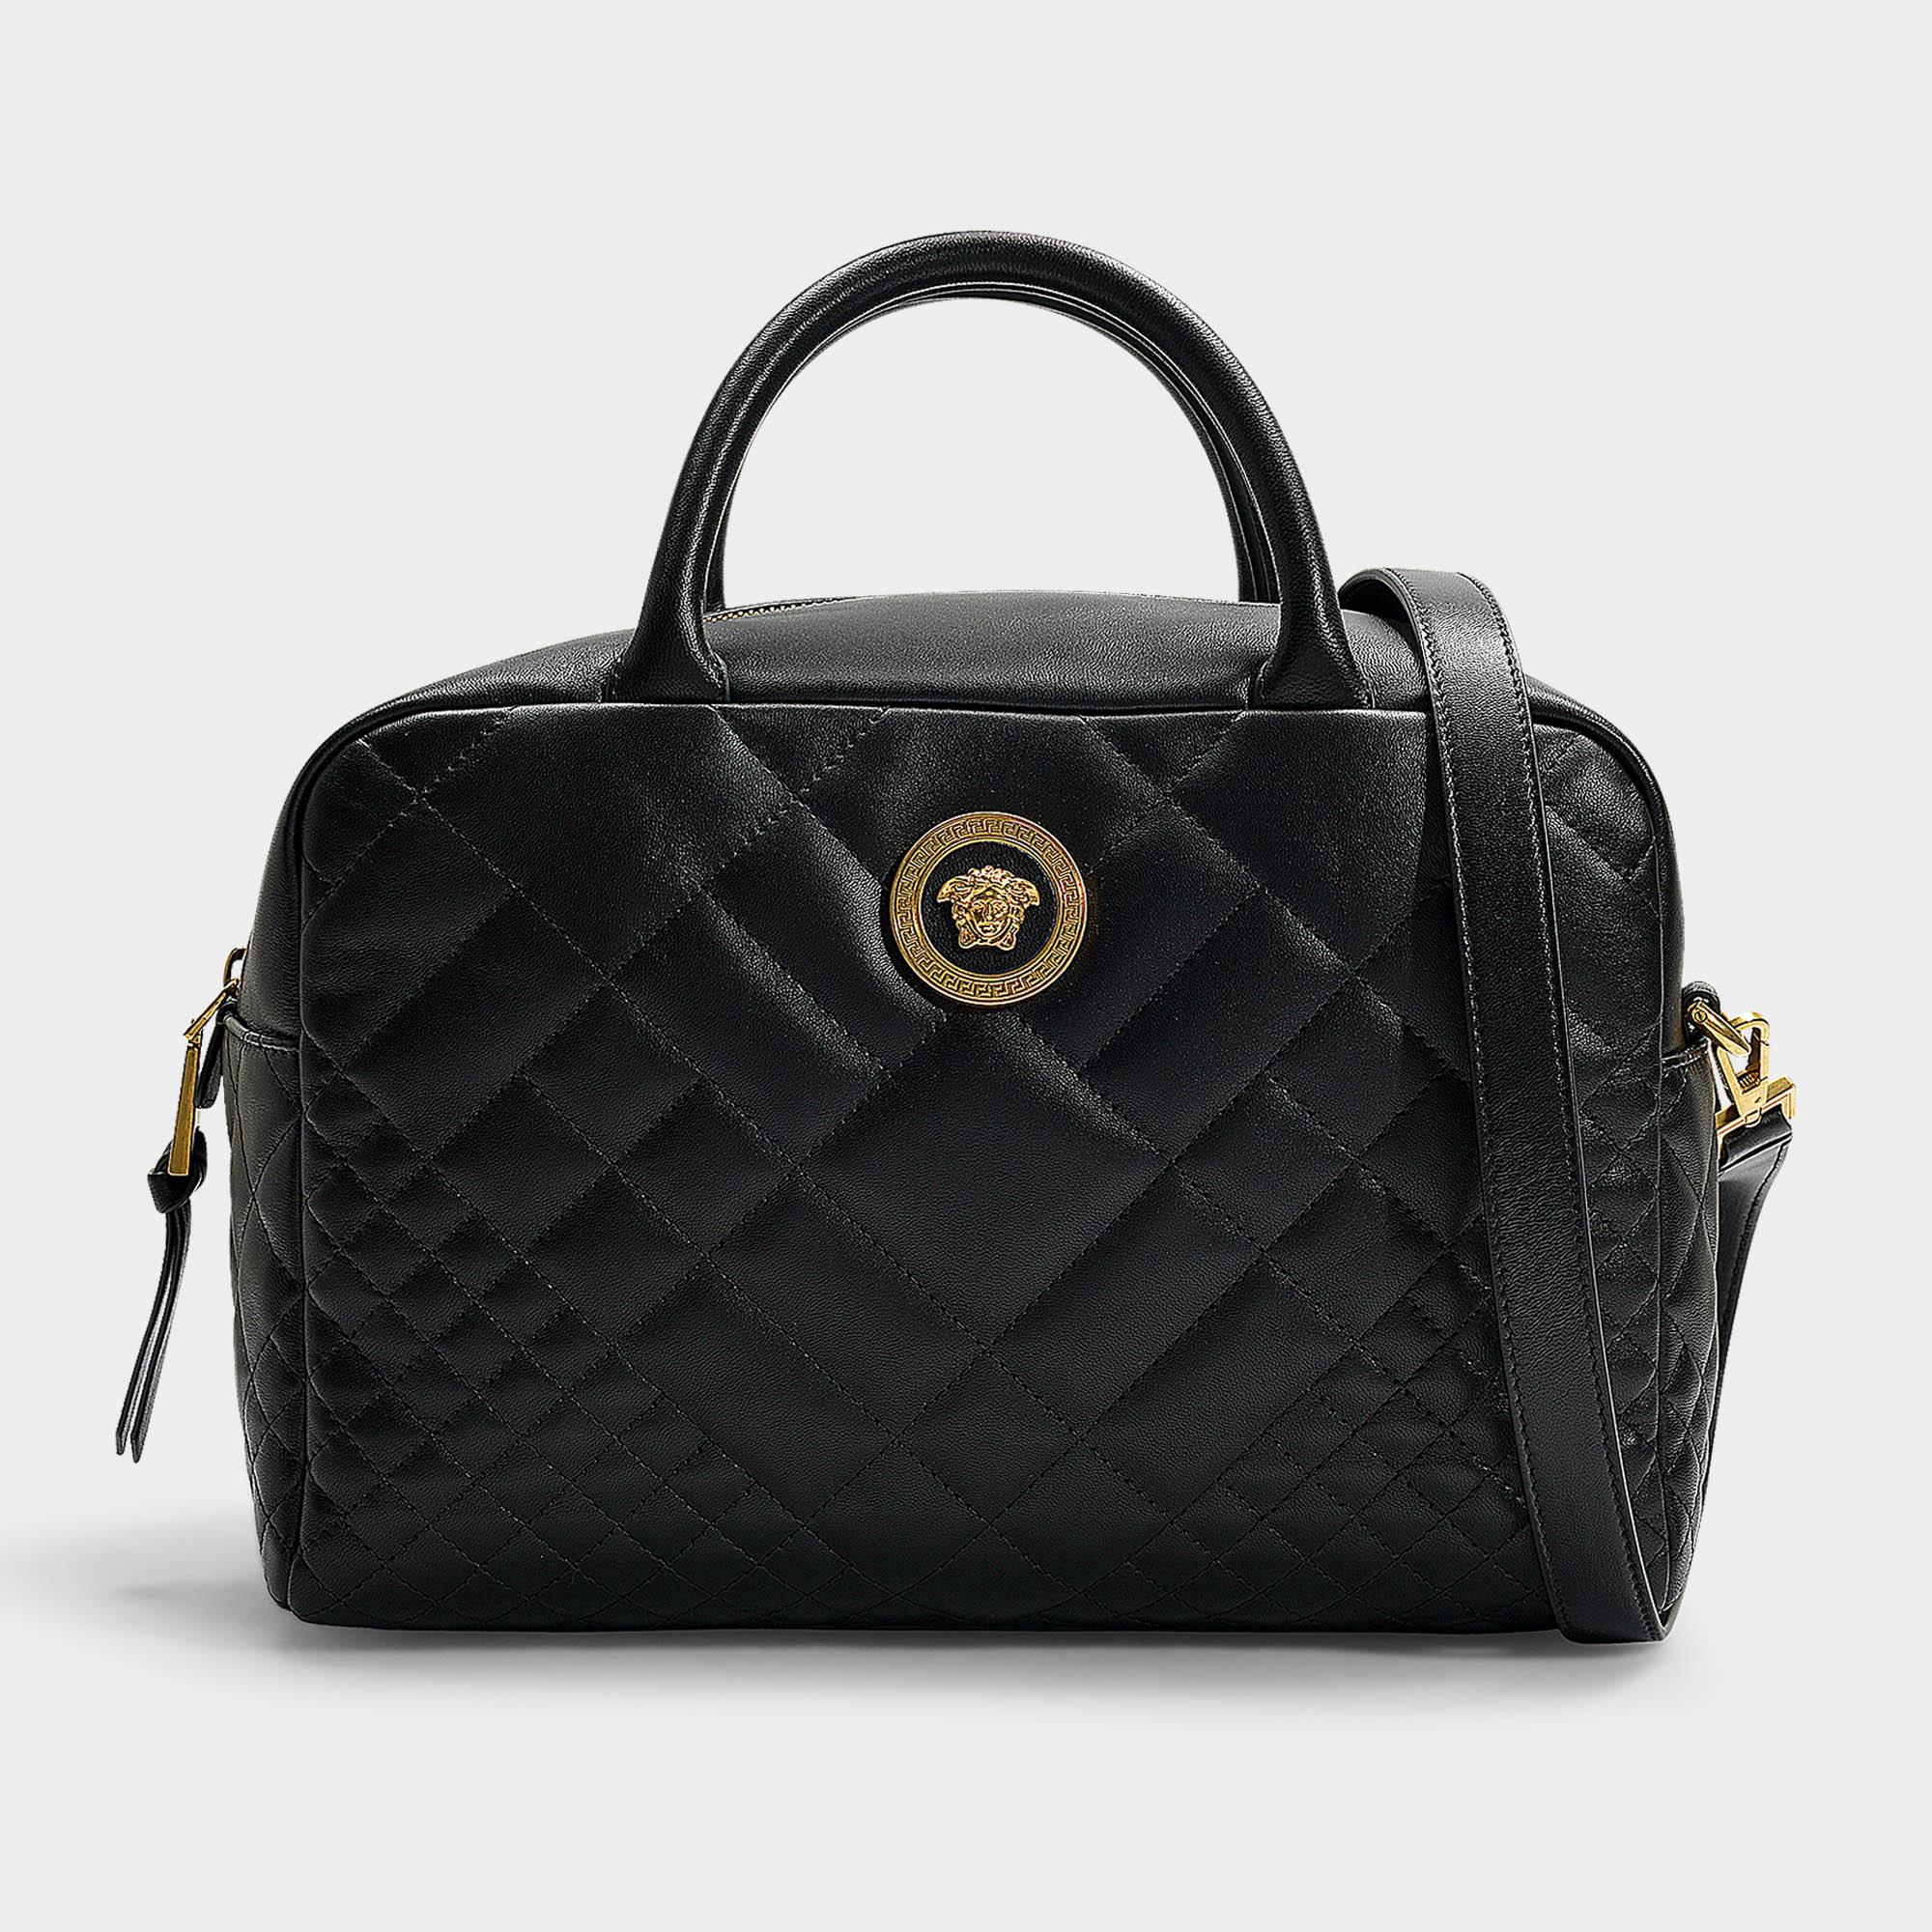 eaf71a501b Lyst - Versace Bowling Bag In Black Quilted Lamb Leather in Black